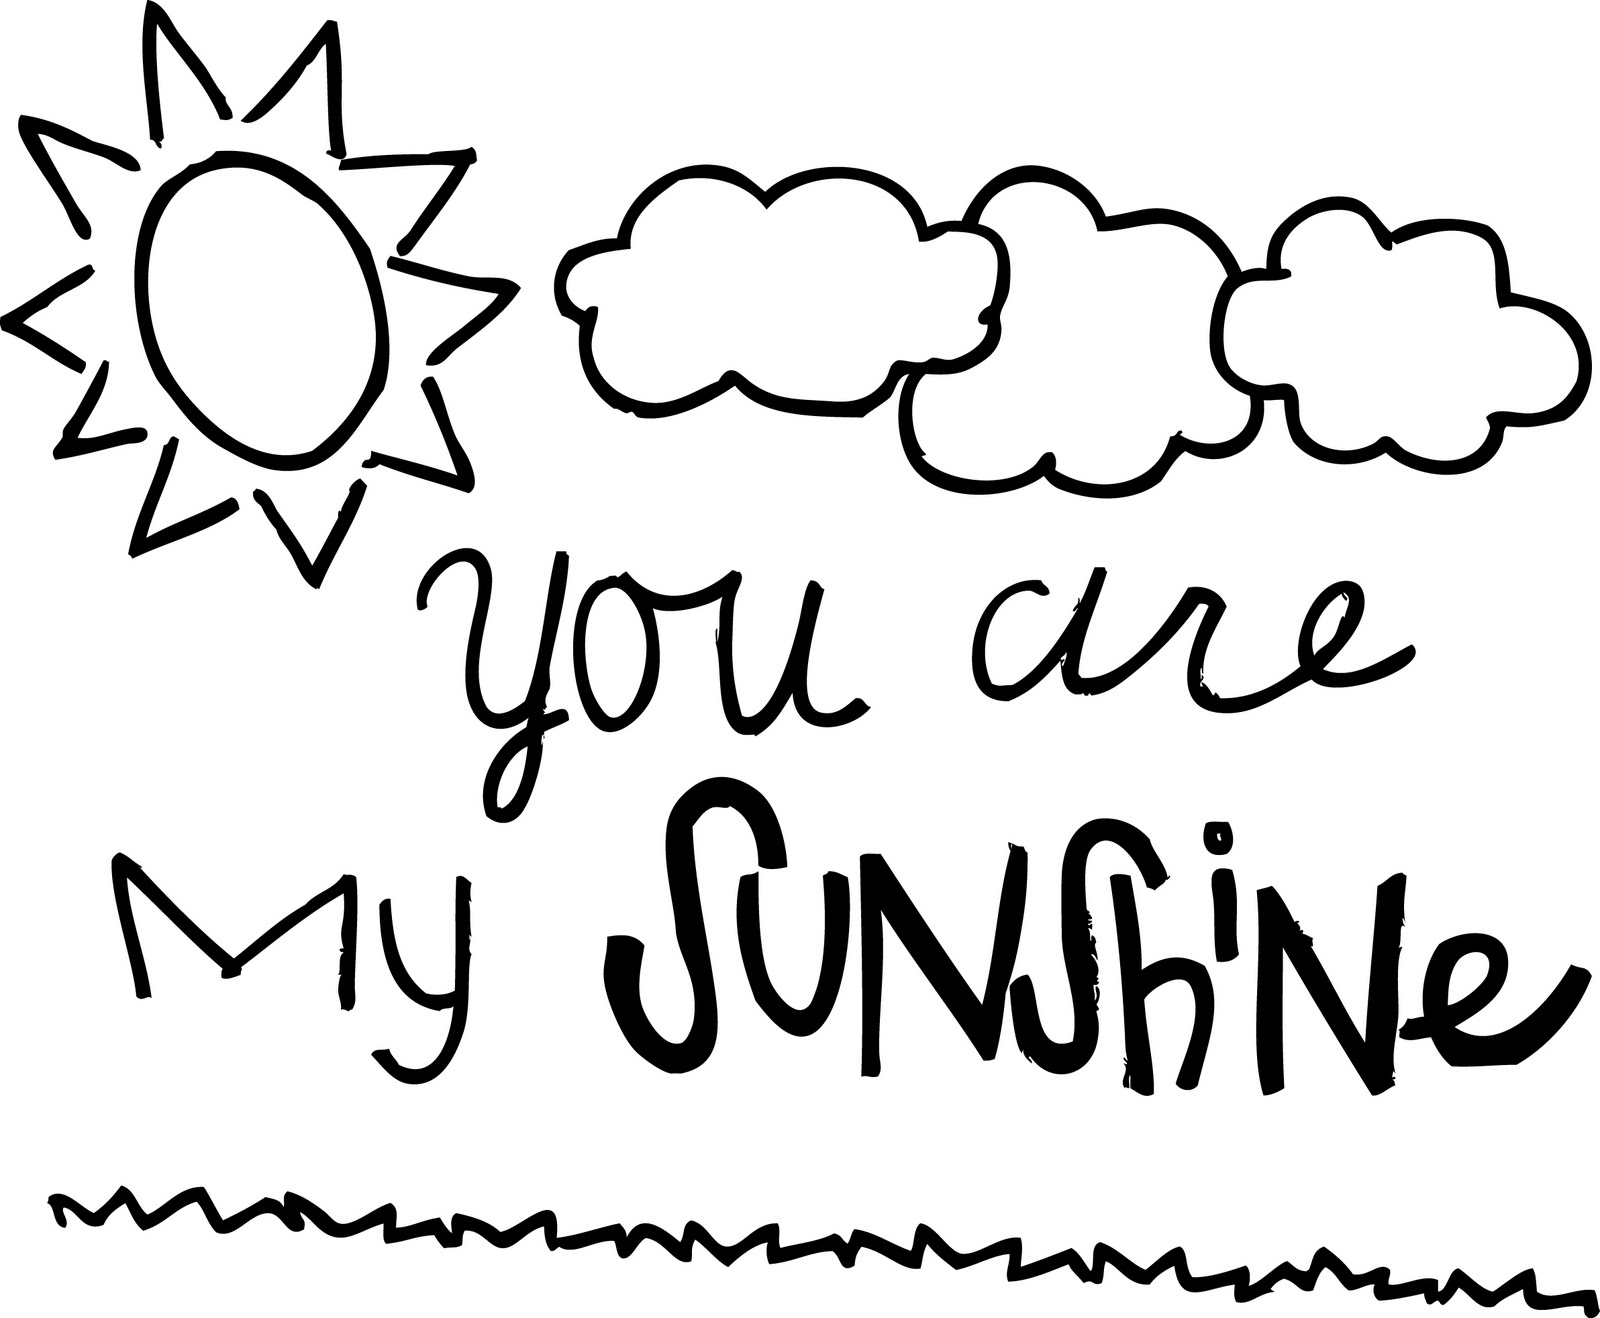 All Things Girly Illustrating: You are my sunshine:)